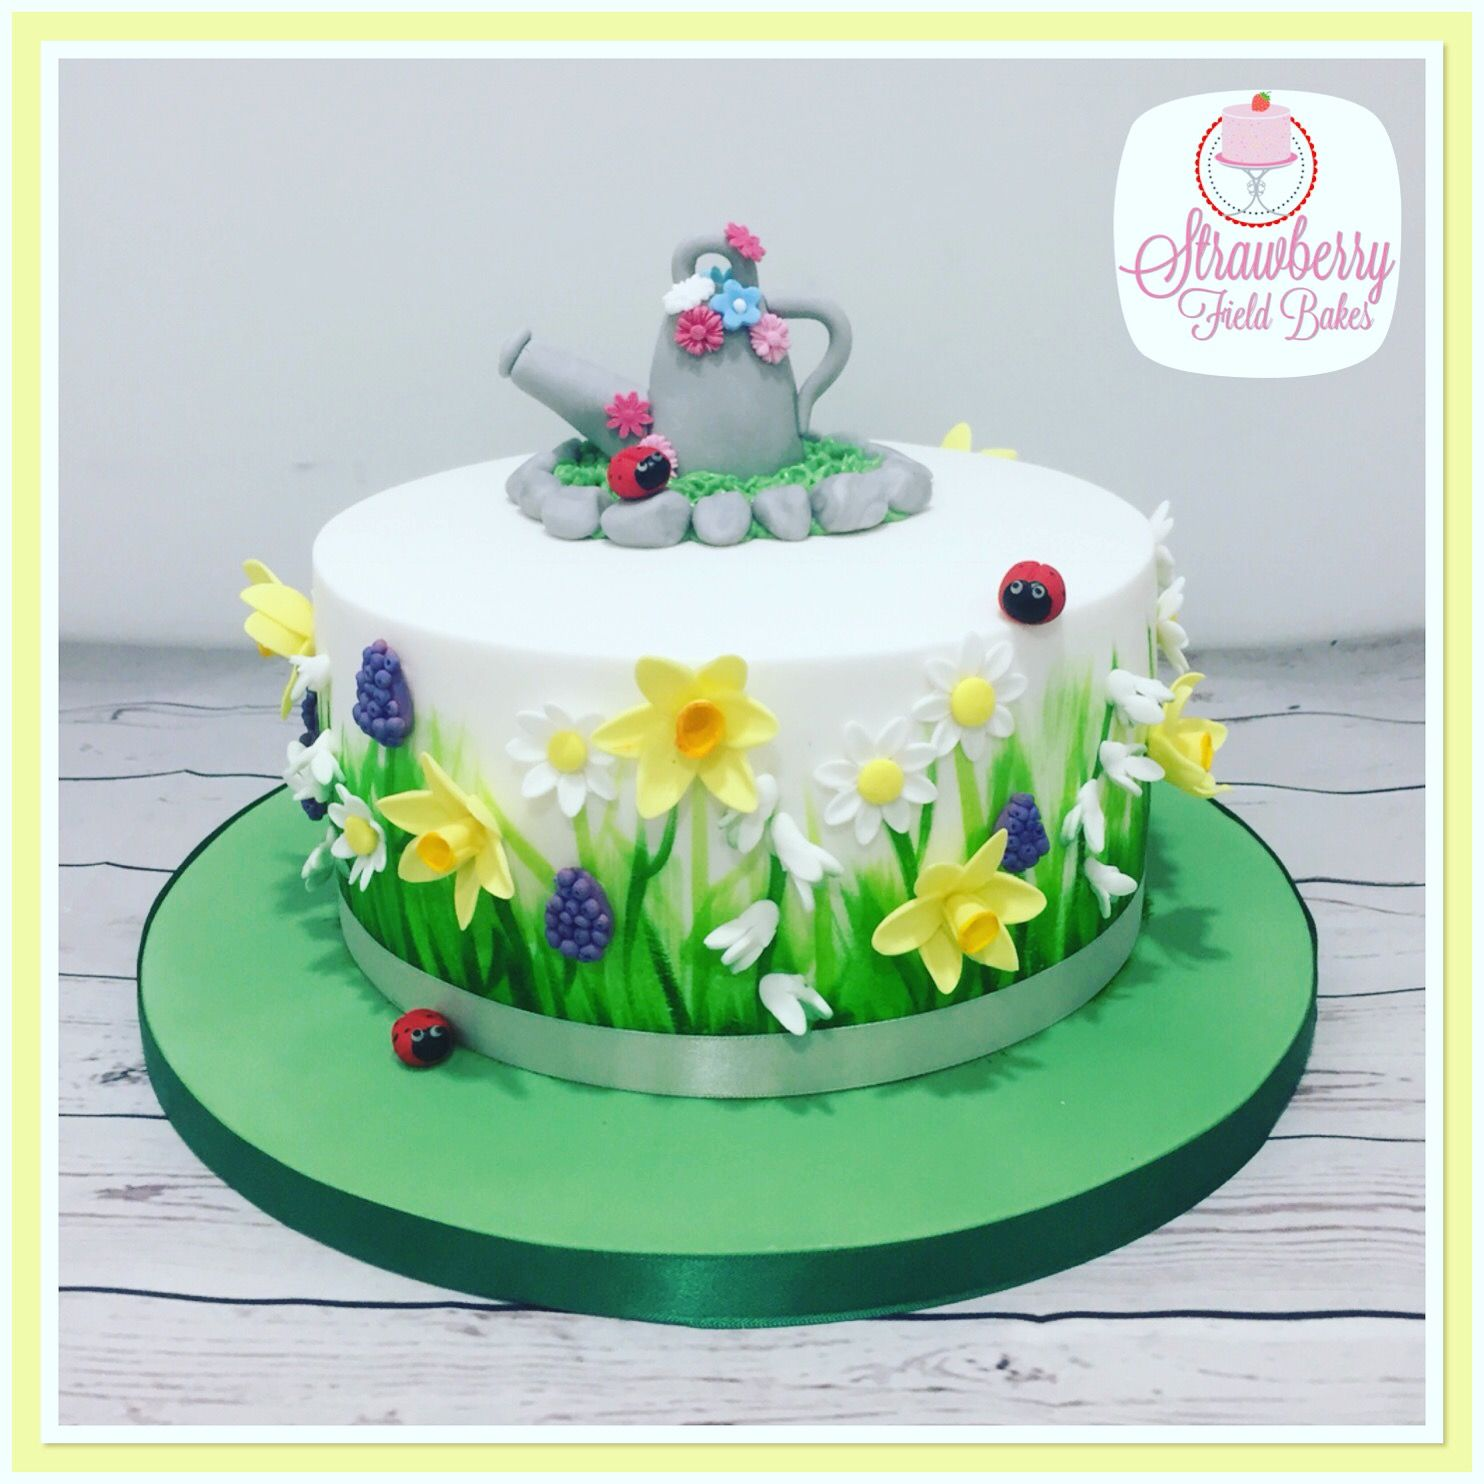 Hand Painted Spring Flower Cake With Daffodils Snow Drops Daisys